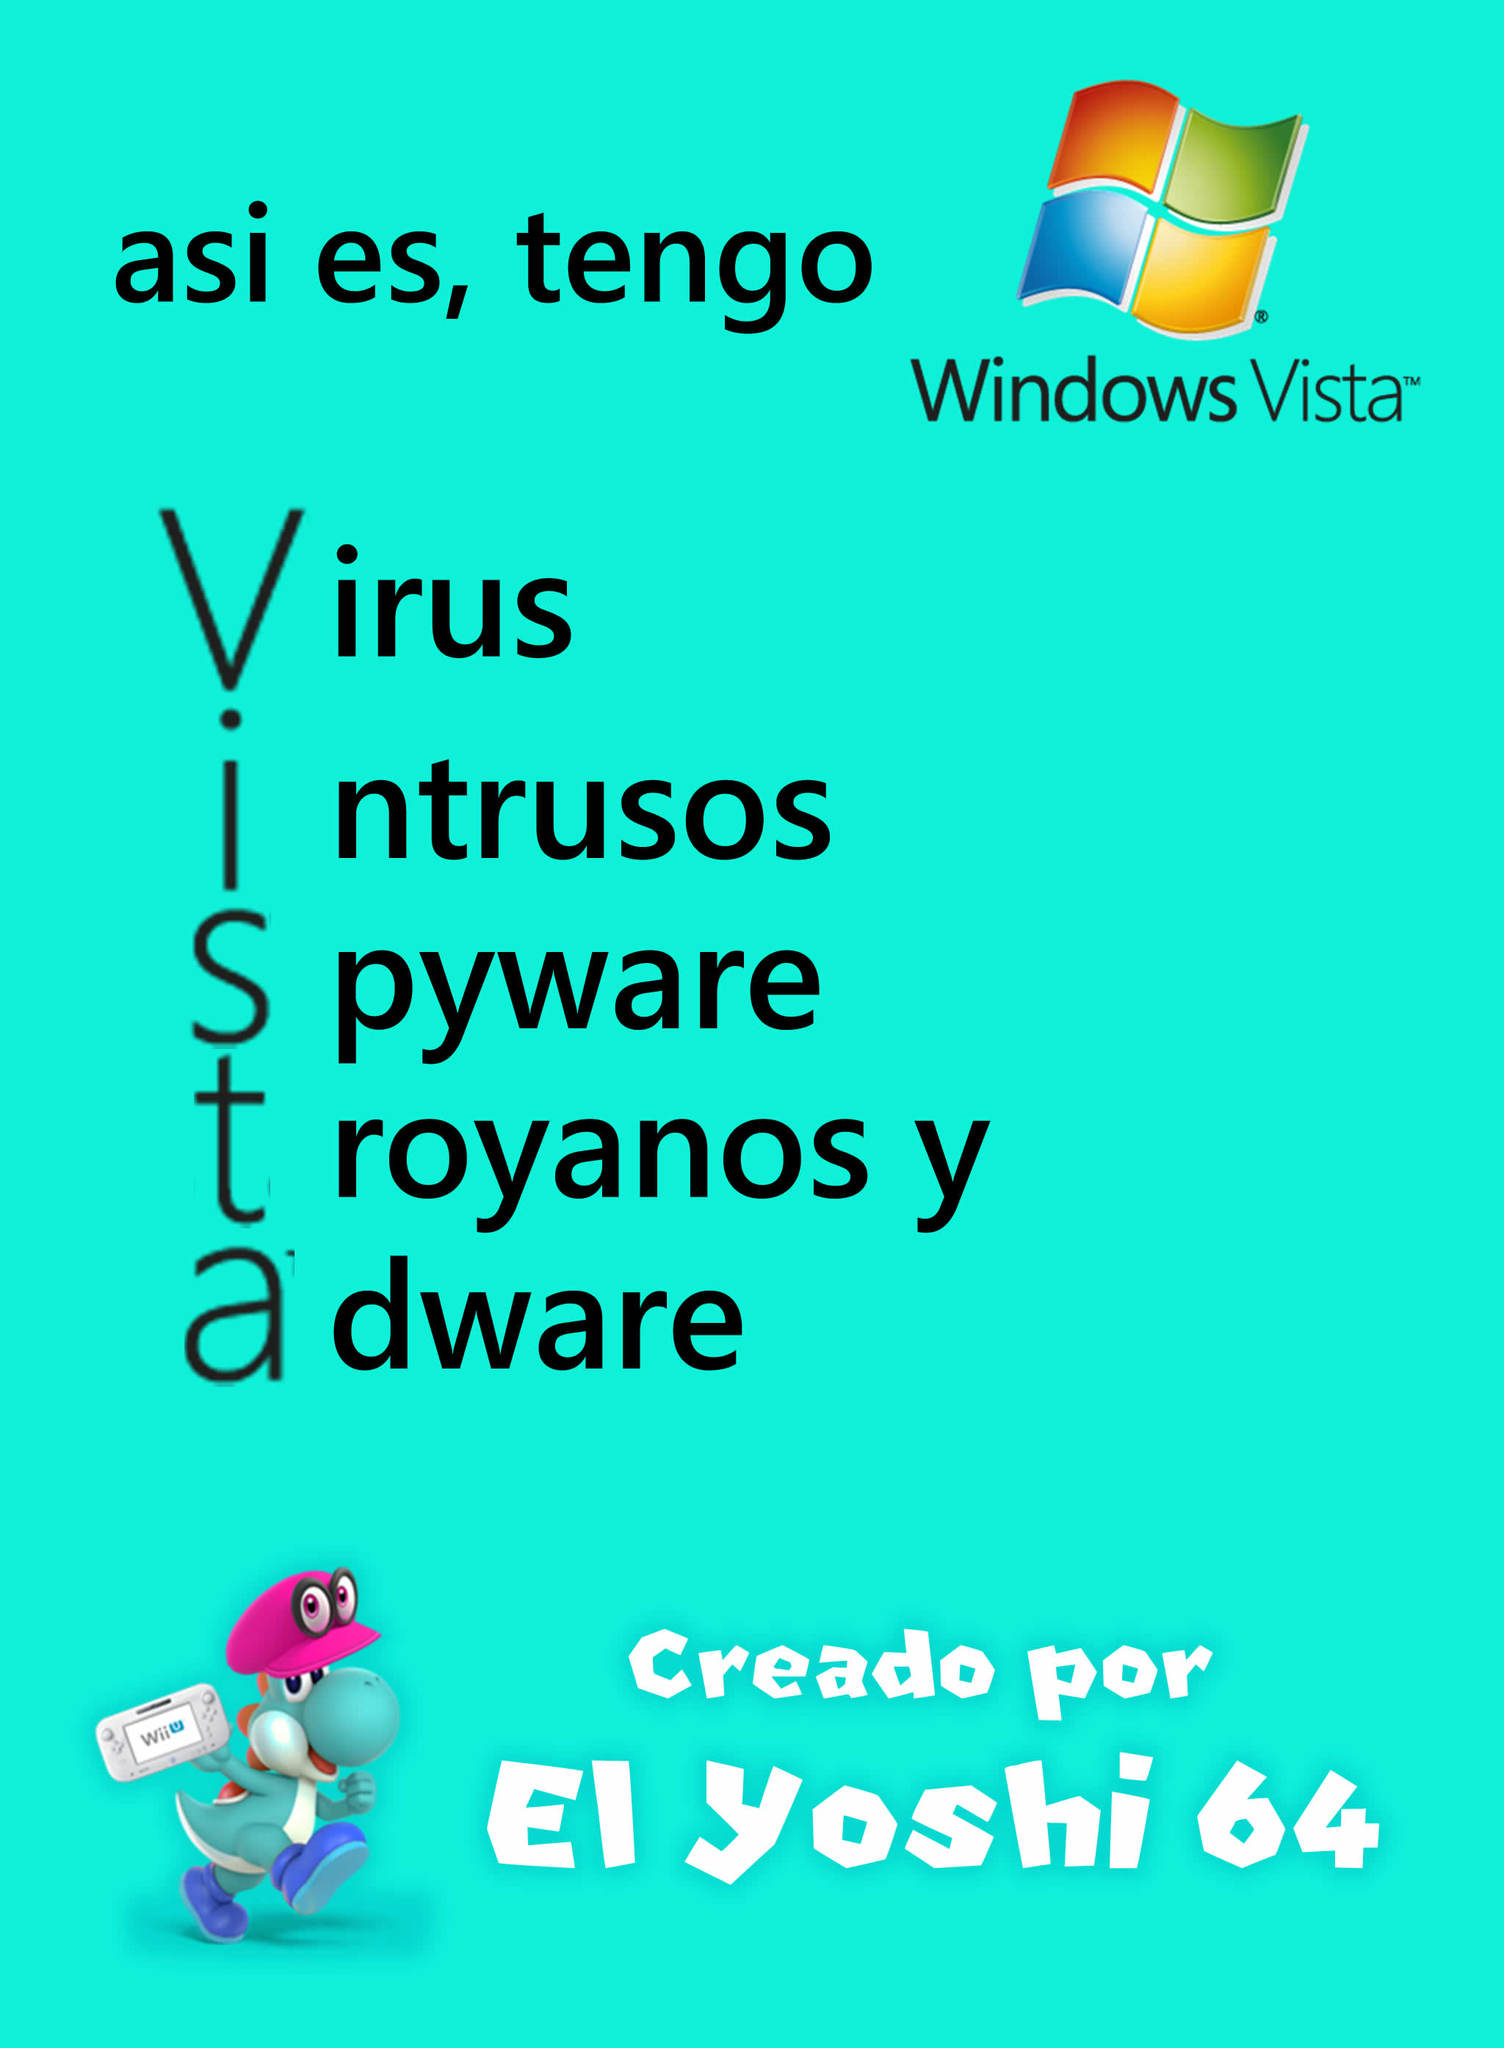 Hice otro meme mas de Windows Vista - PD: En realidad tengo Windows 7 y Windows 10 - Meme hecho desde Windows 7